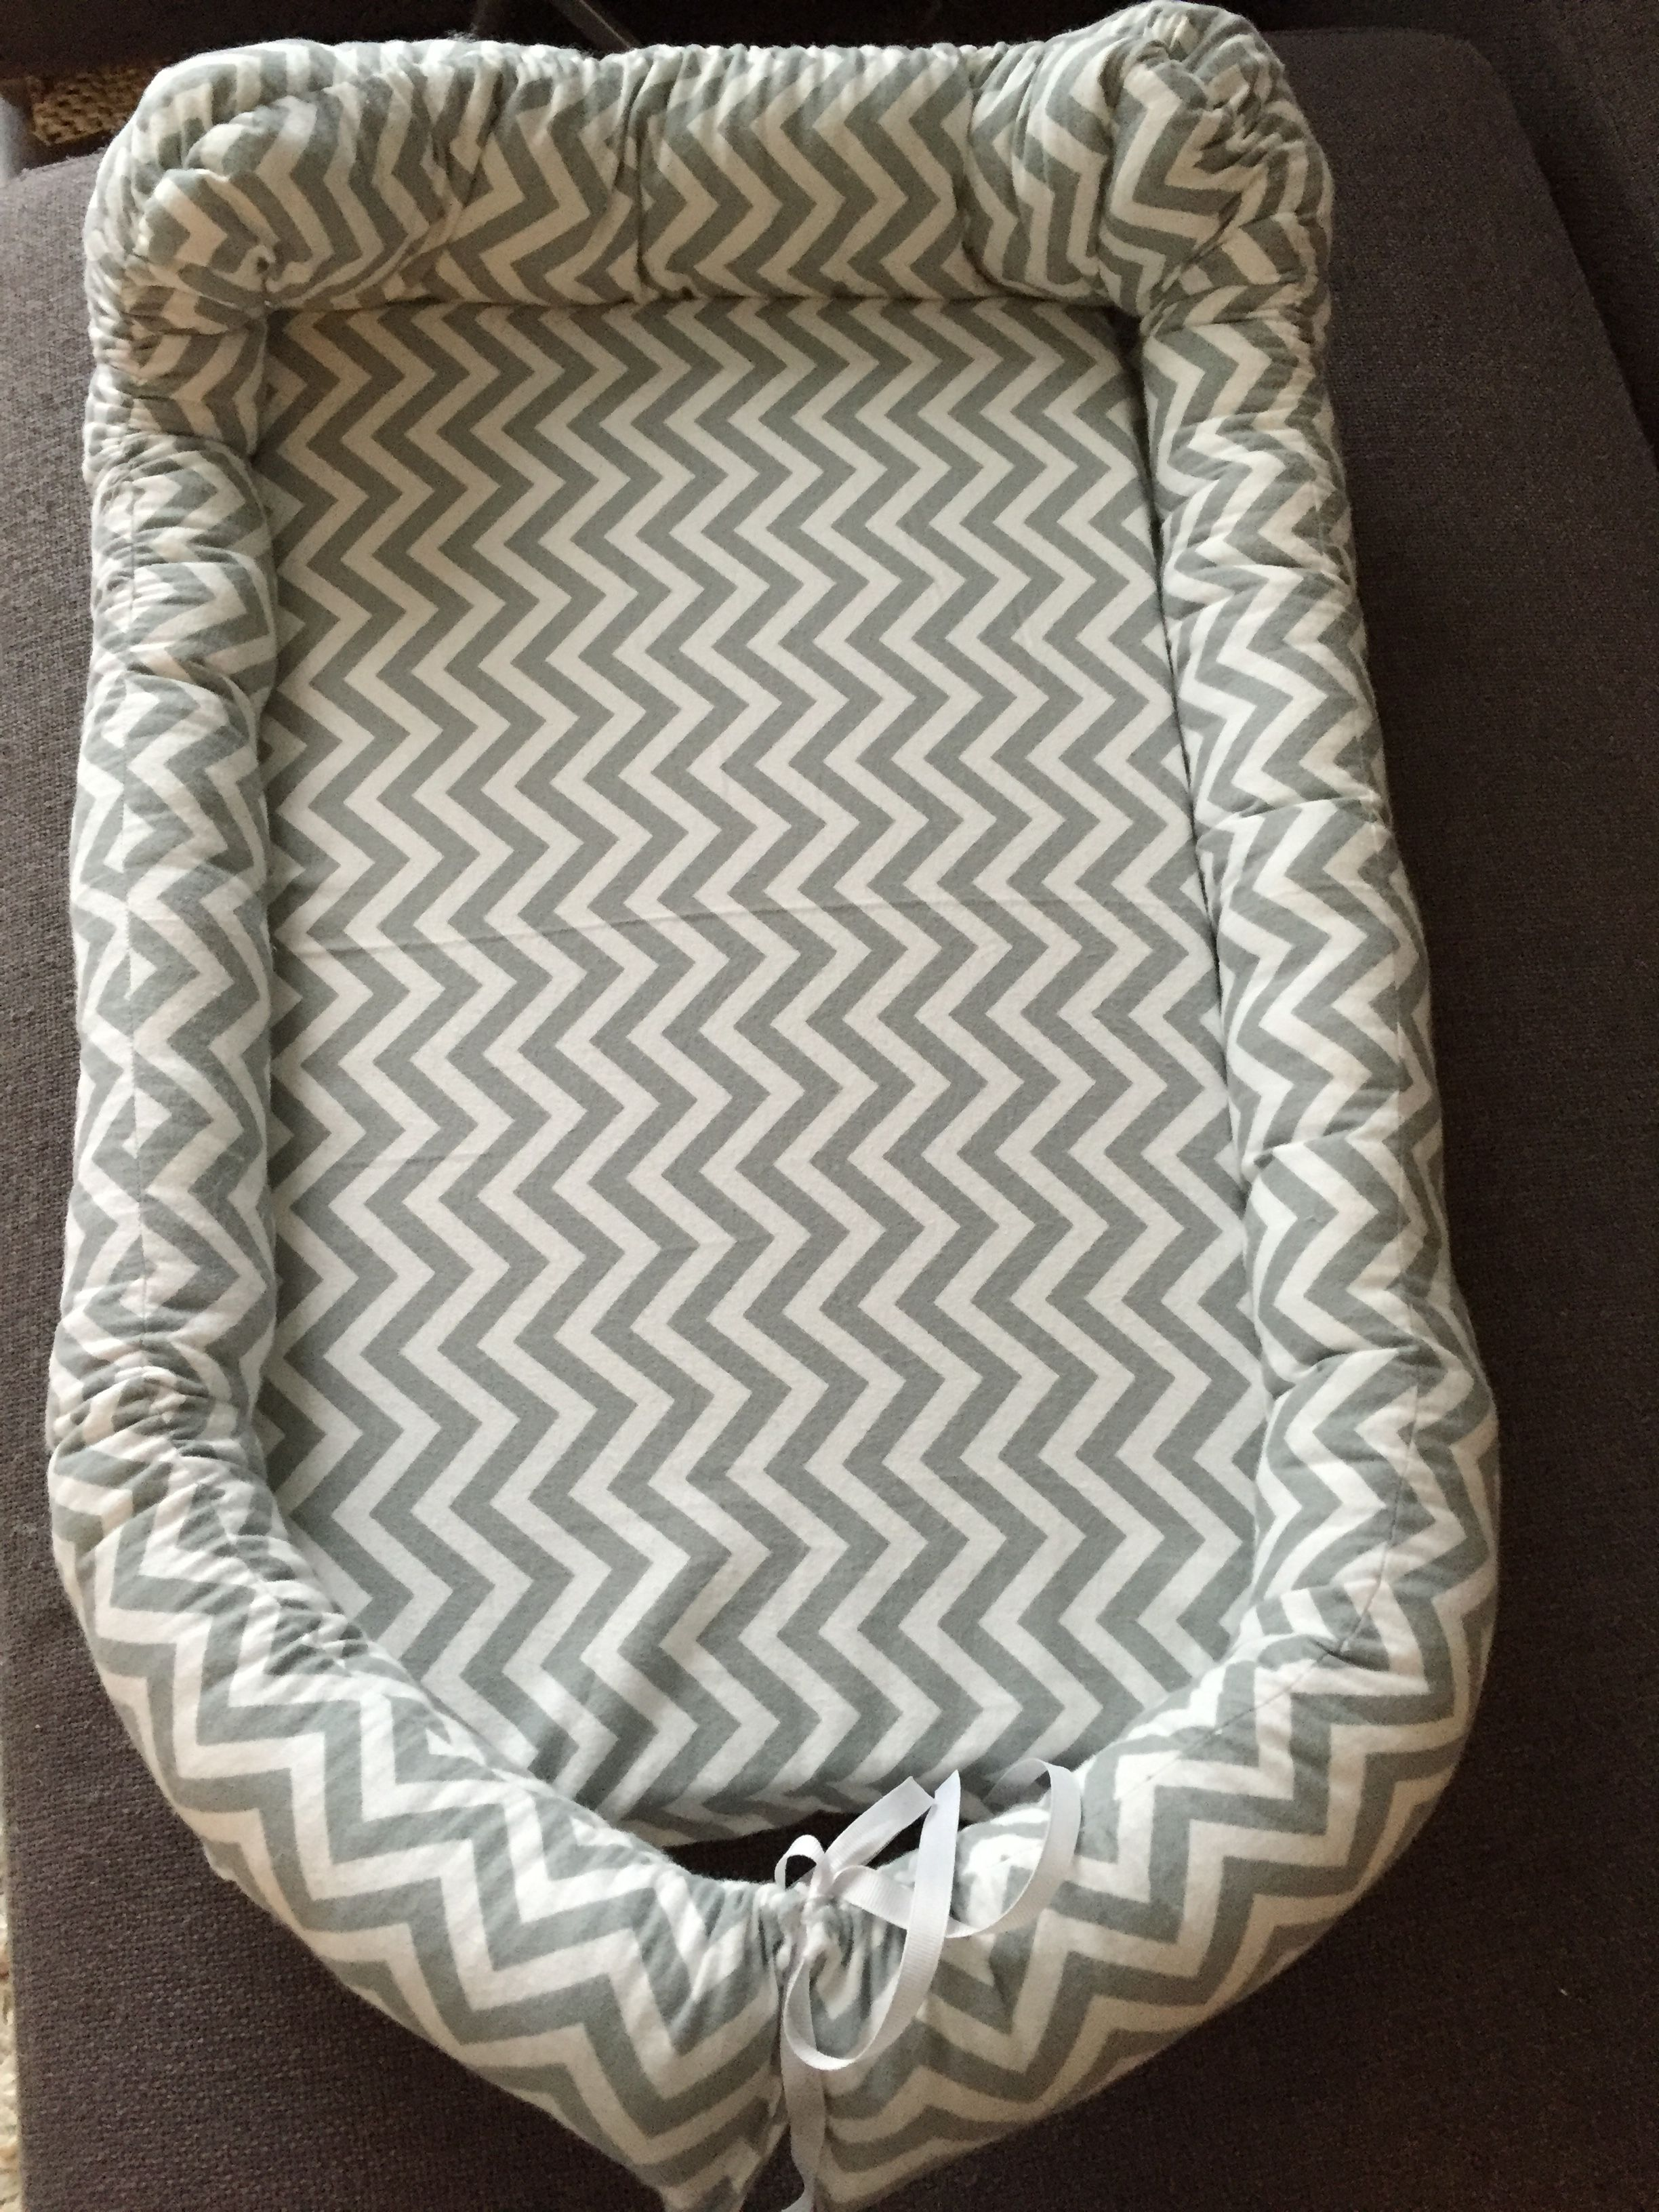 Diy baby co-sleeper pillow                                                                                                                                                                                 Mais